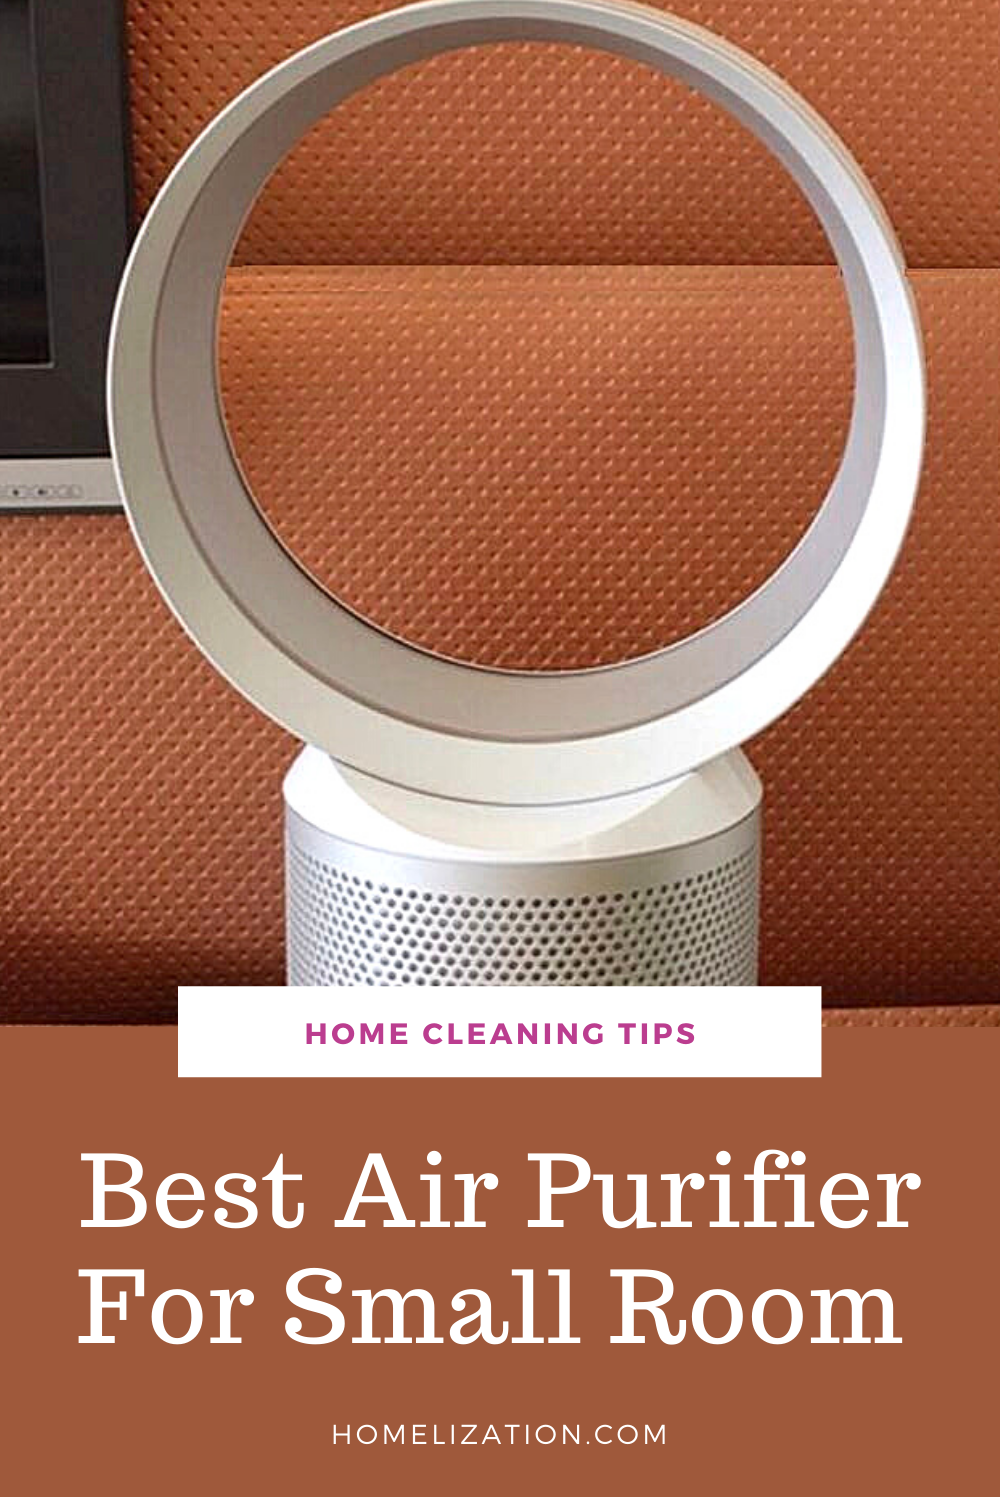 Best Air Purifier For Small Room Reviews 2020